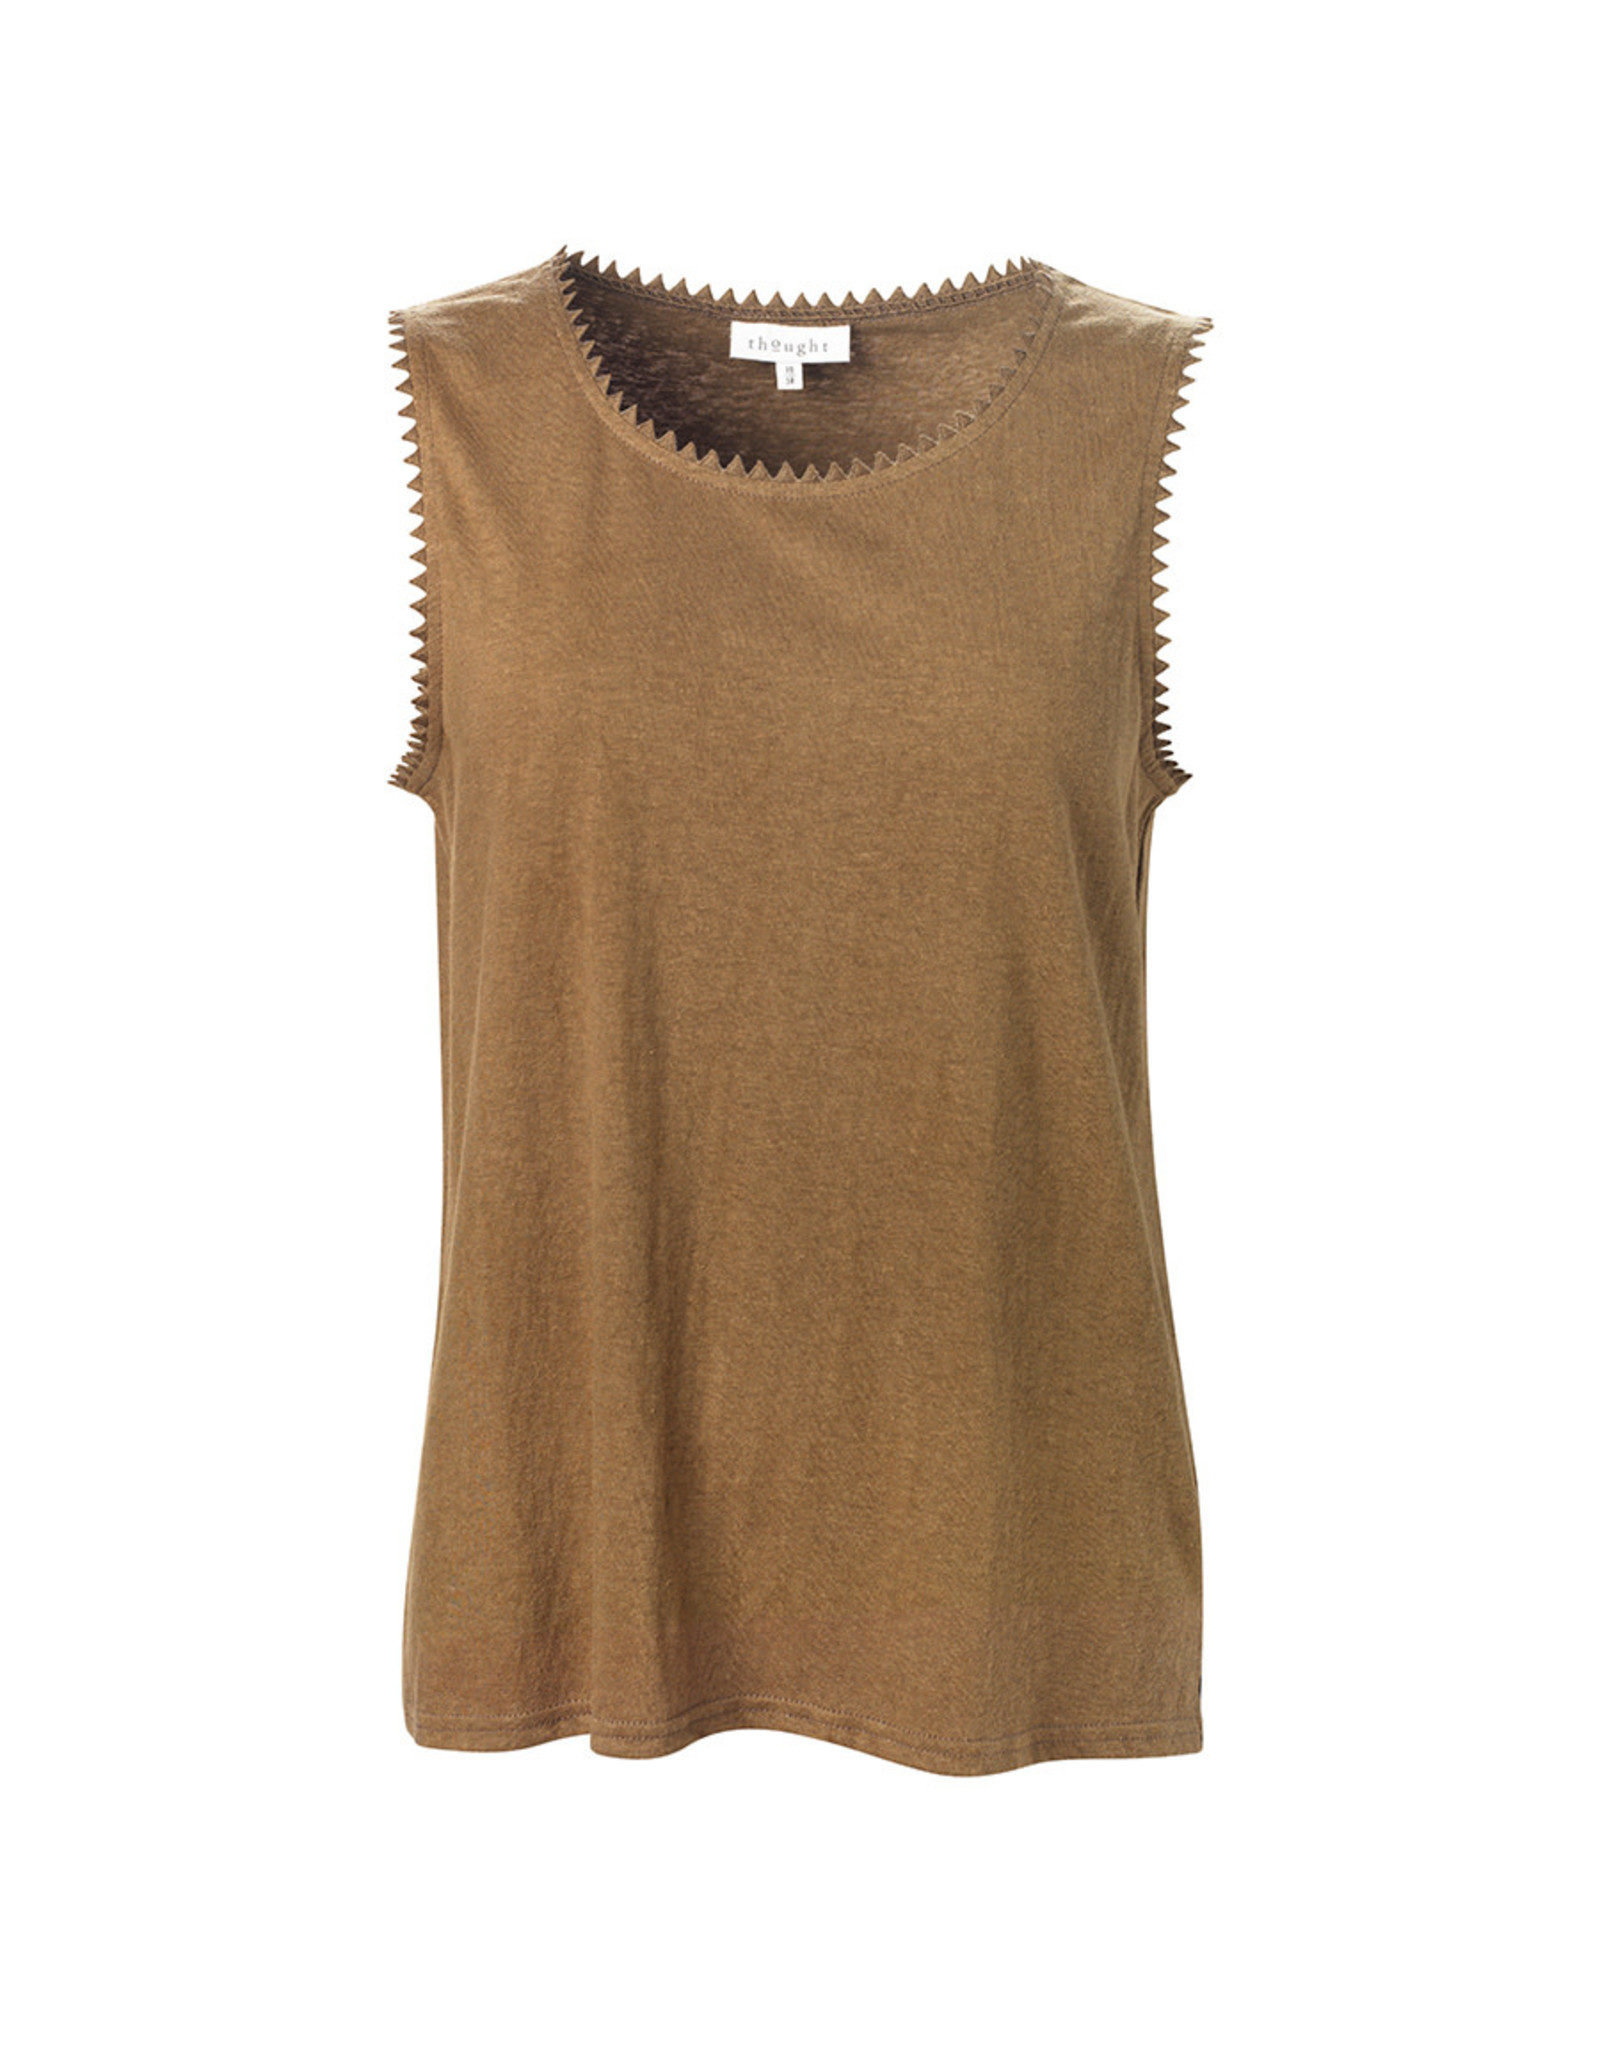 Thought Thought Betta Vest Top